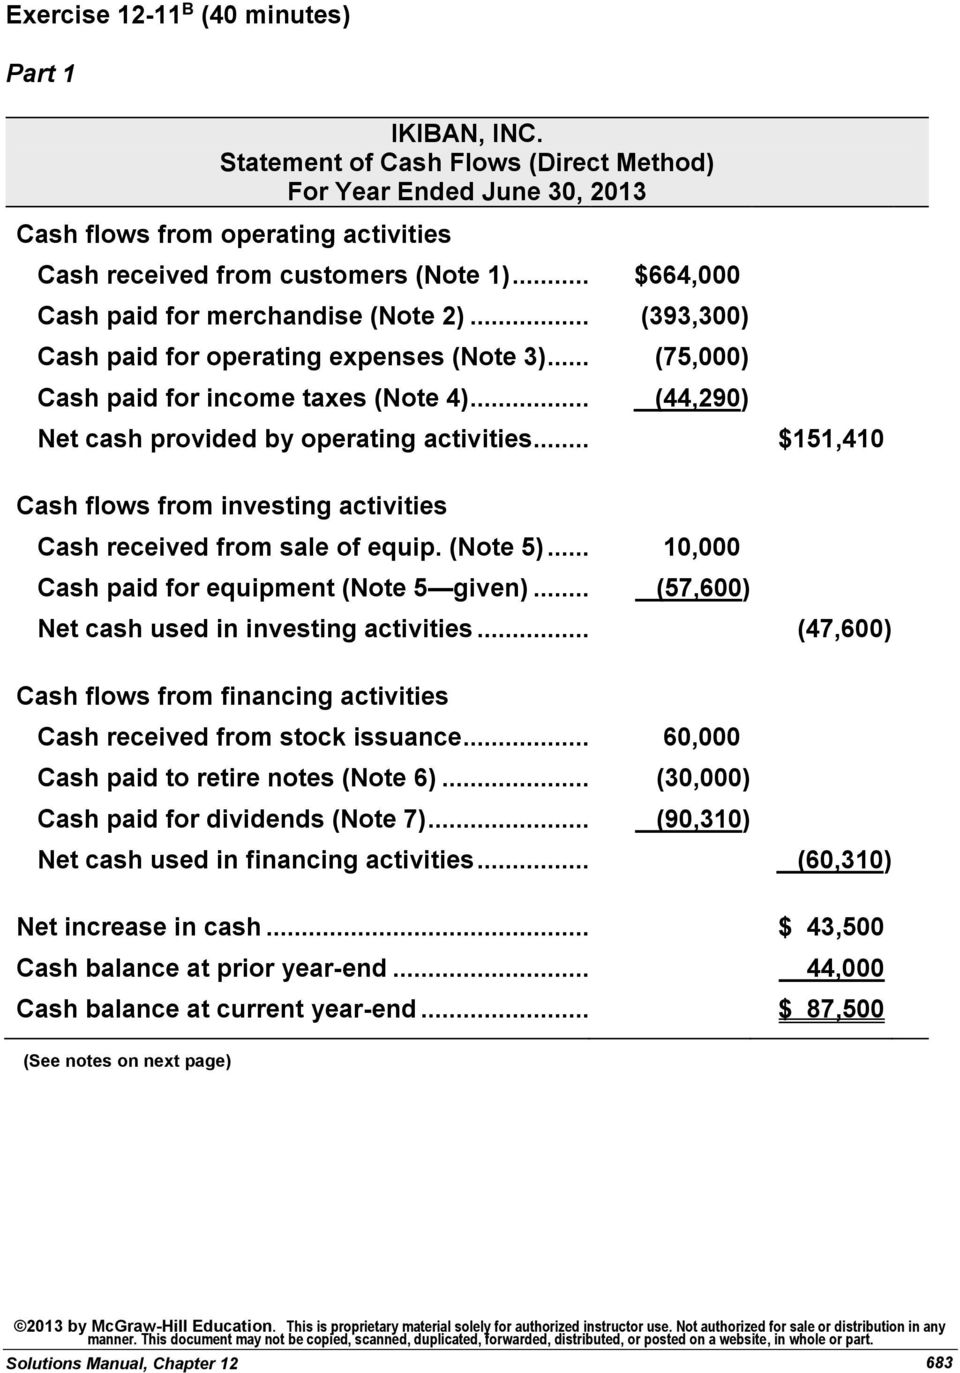 .. (44,290) Net cash provided by operating activities... $151,410 Cash flows from investing activities Cash received from sale of equip. (Note 5)... 10,000 Cash paid for equipment (Note 5 given).